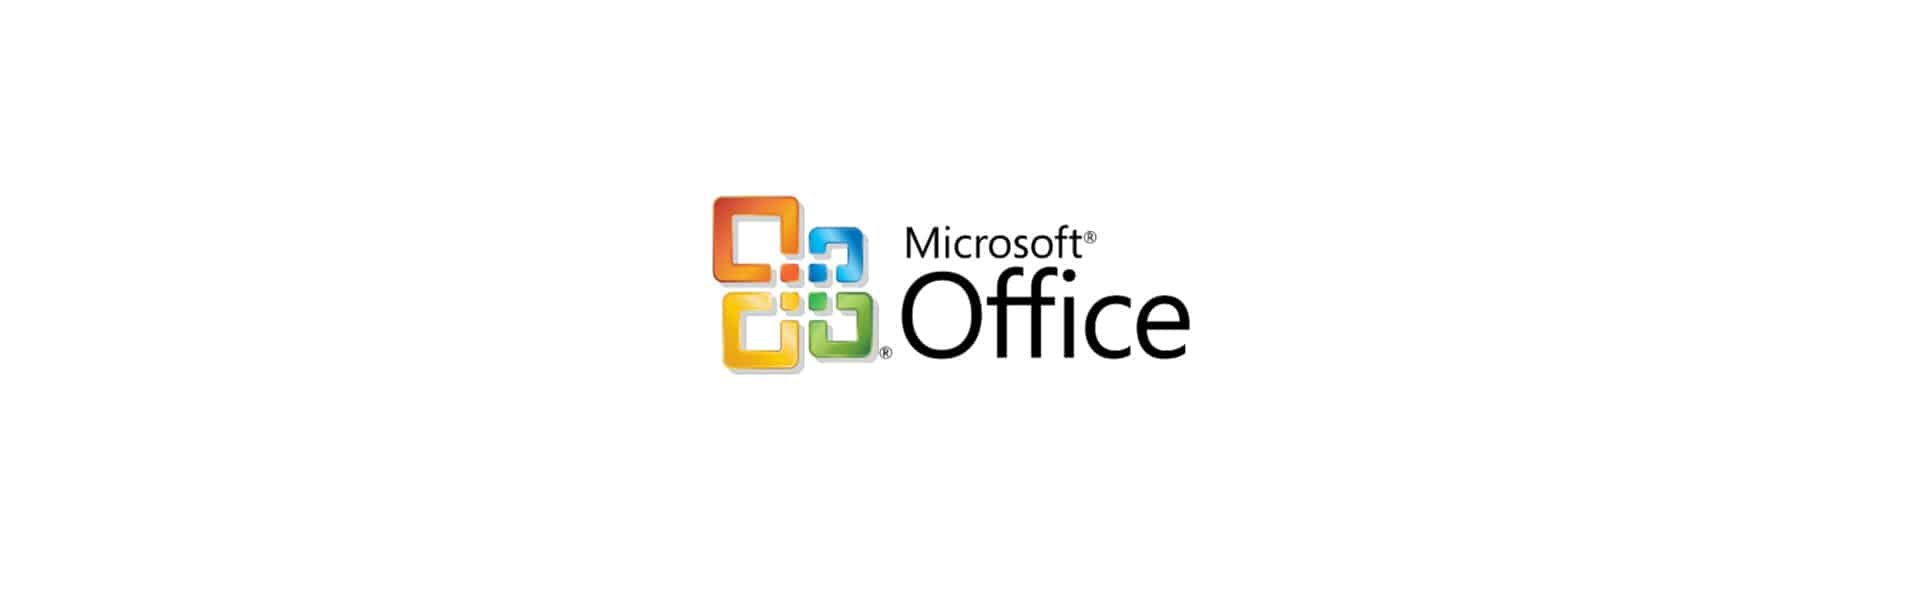 Microsoft support for 2007 products - End of Extended Support